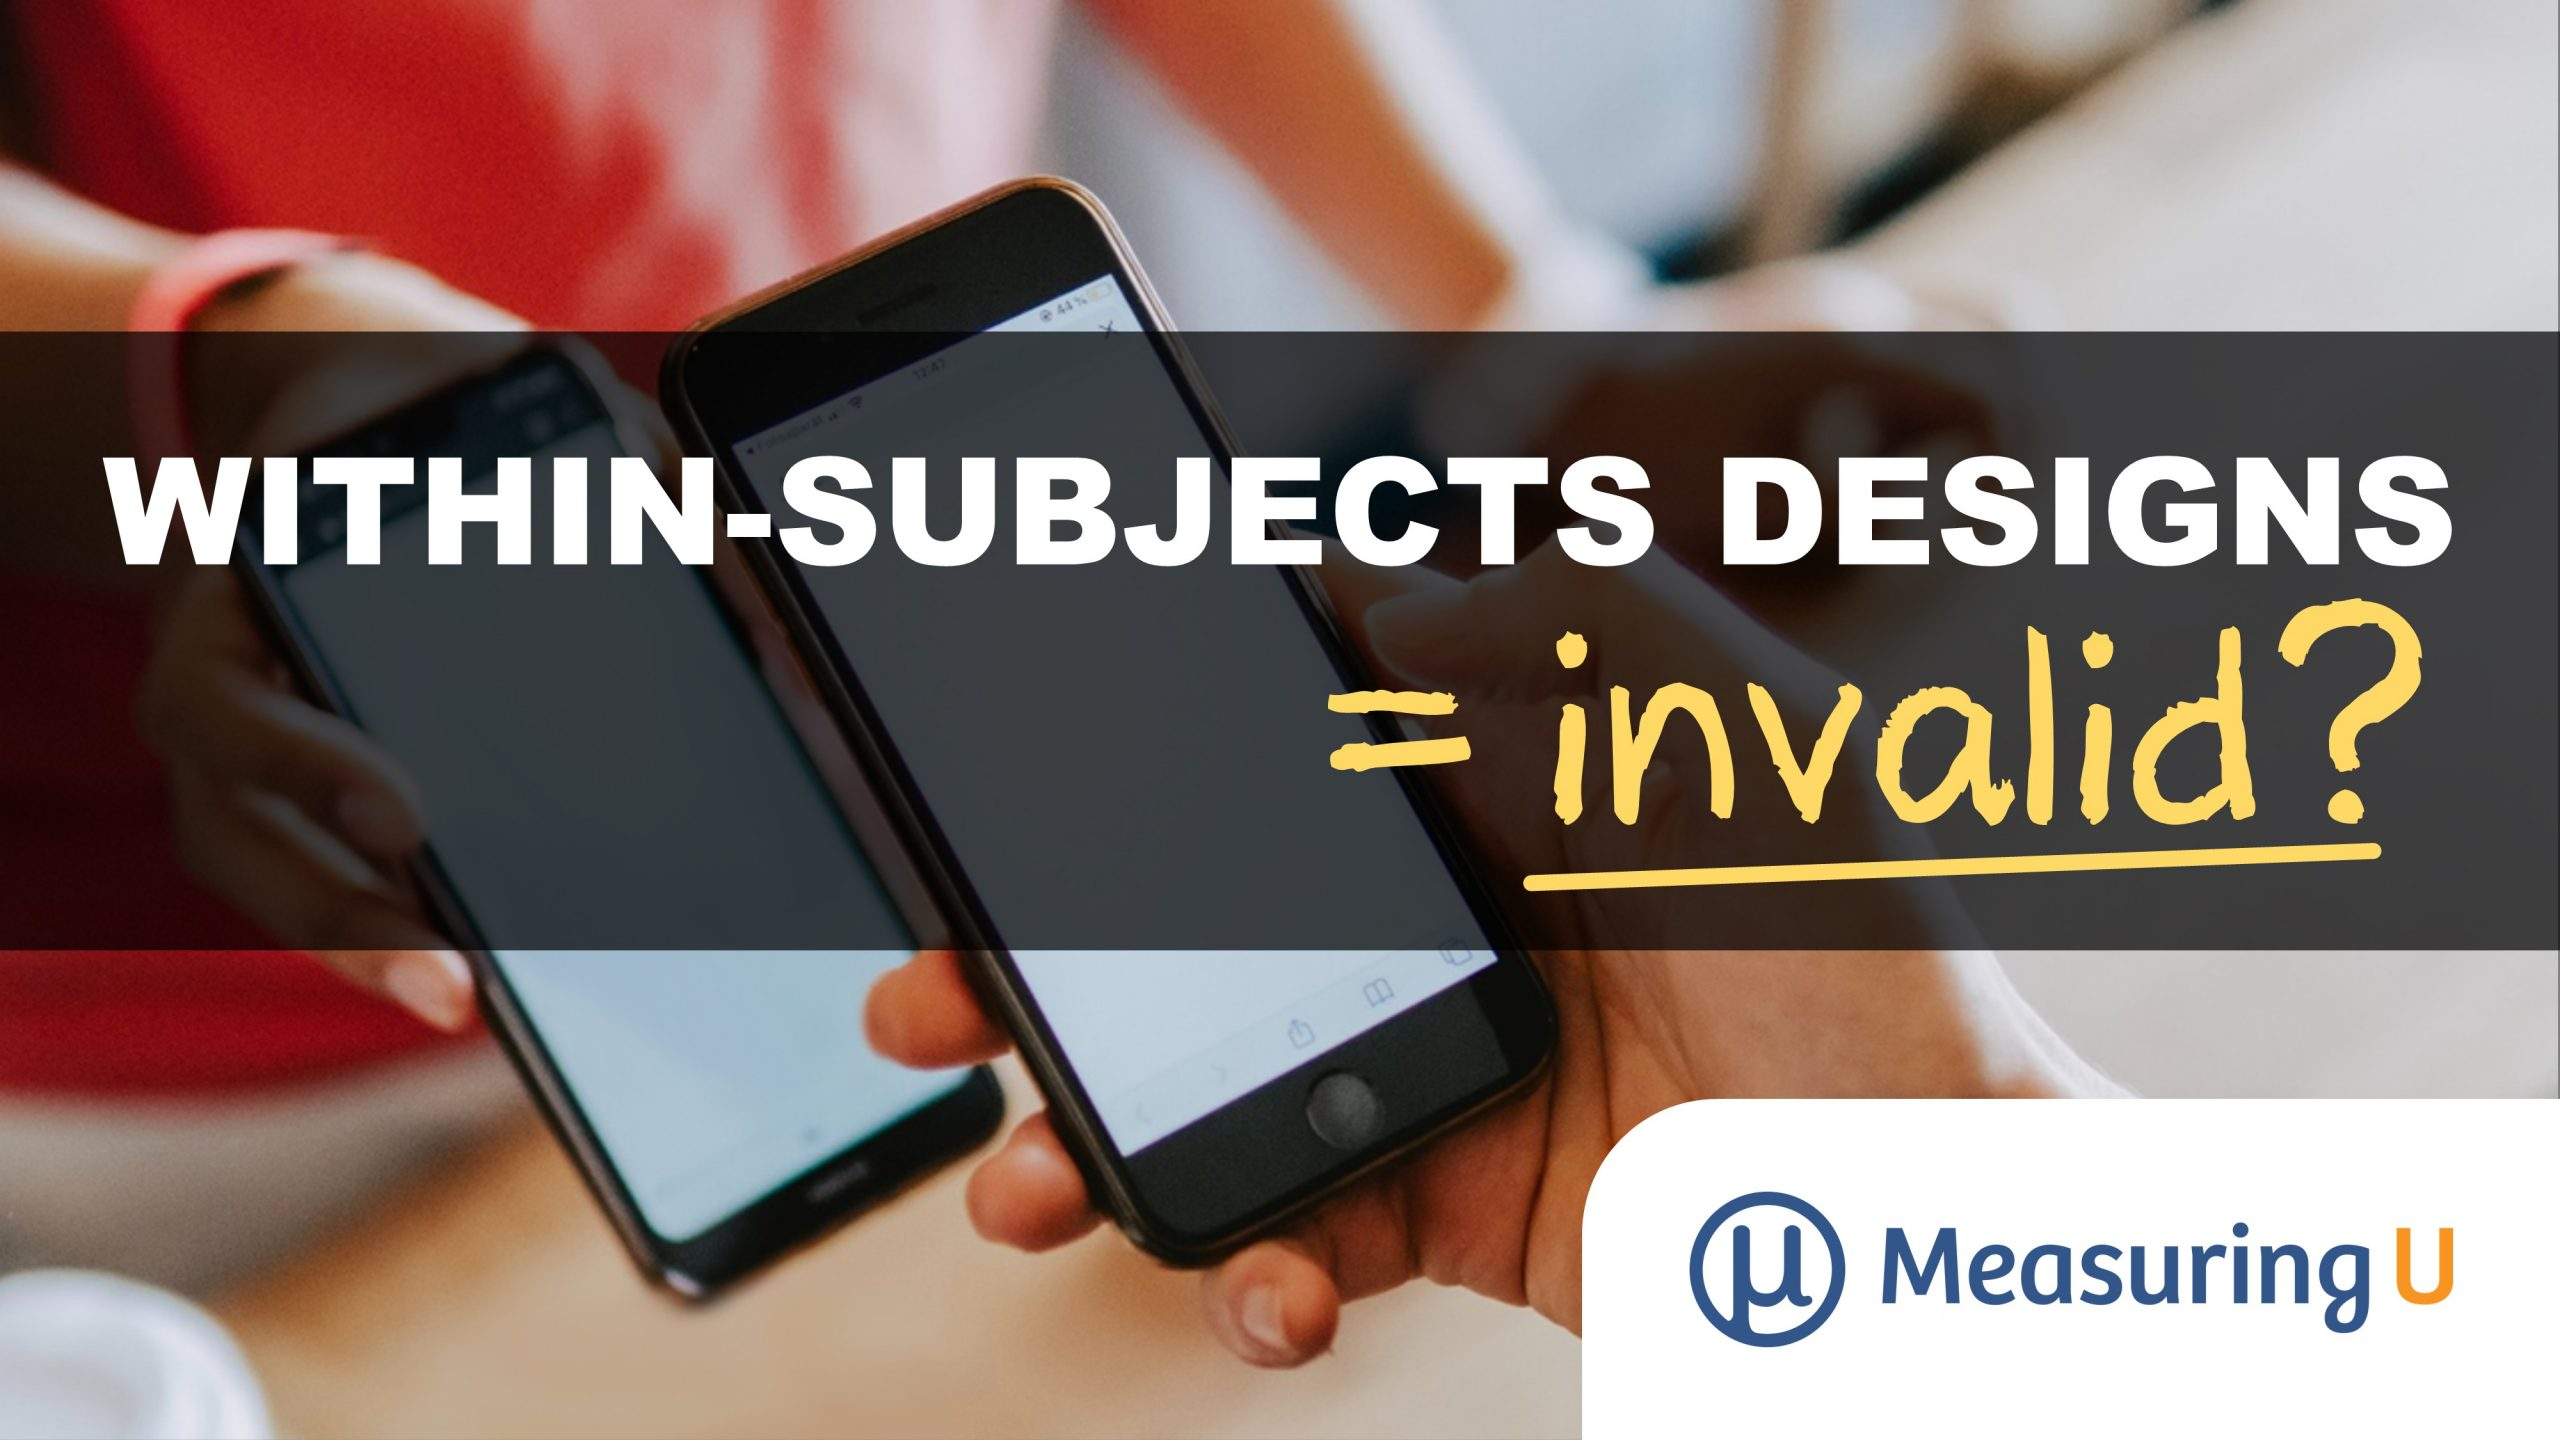 Are Within-Subjects Designs Invalid?